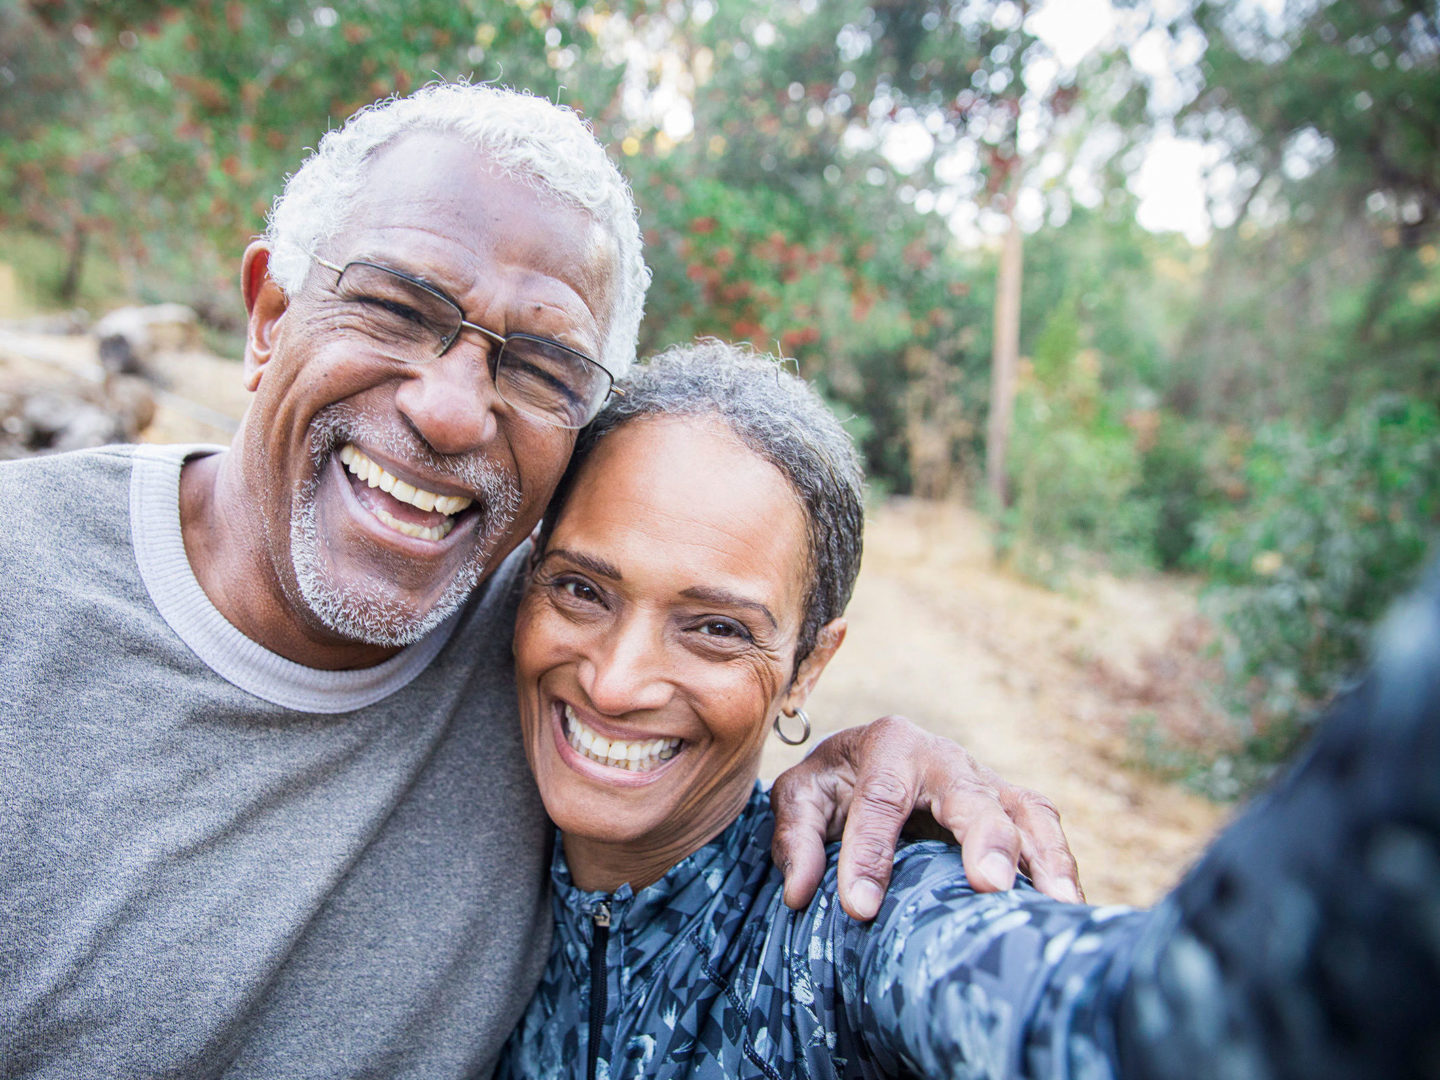 Older Couple Takes a Selfie during their Workout - Health Certification Services | NSF International